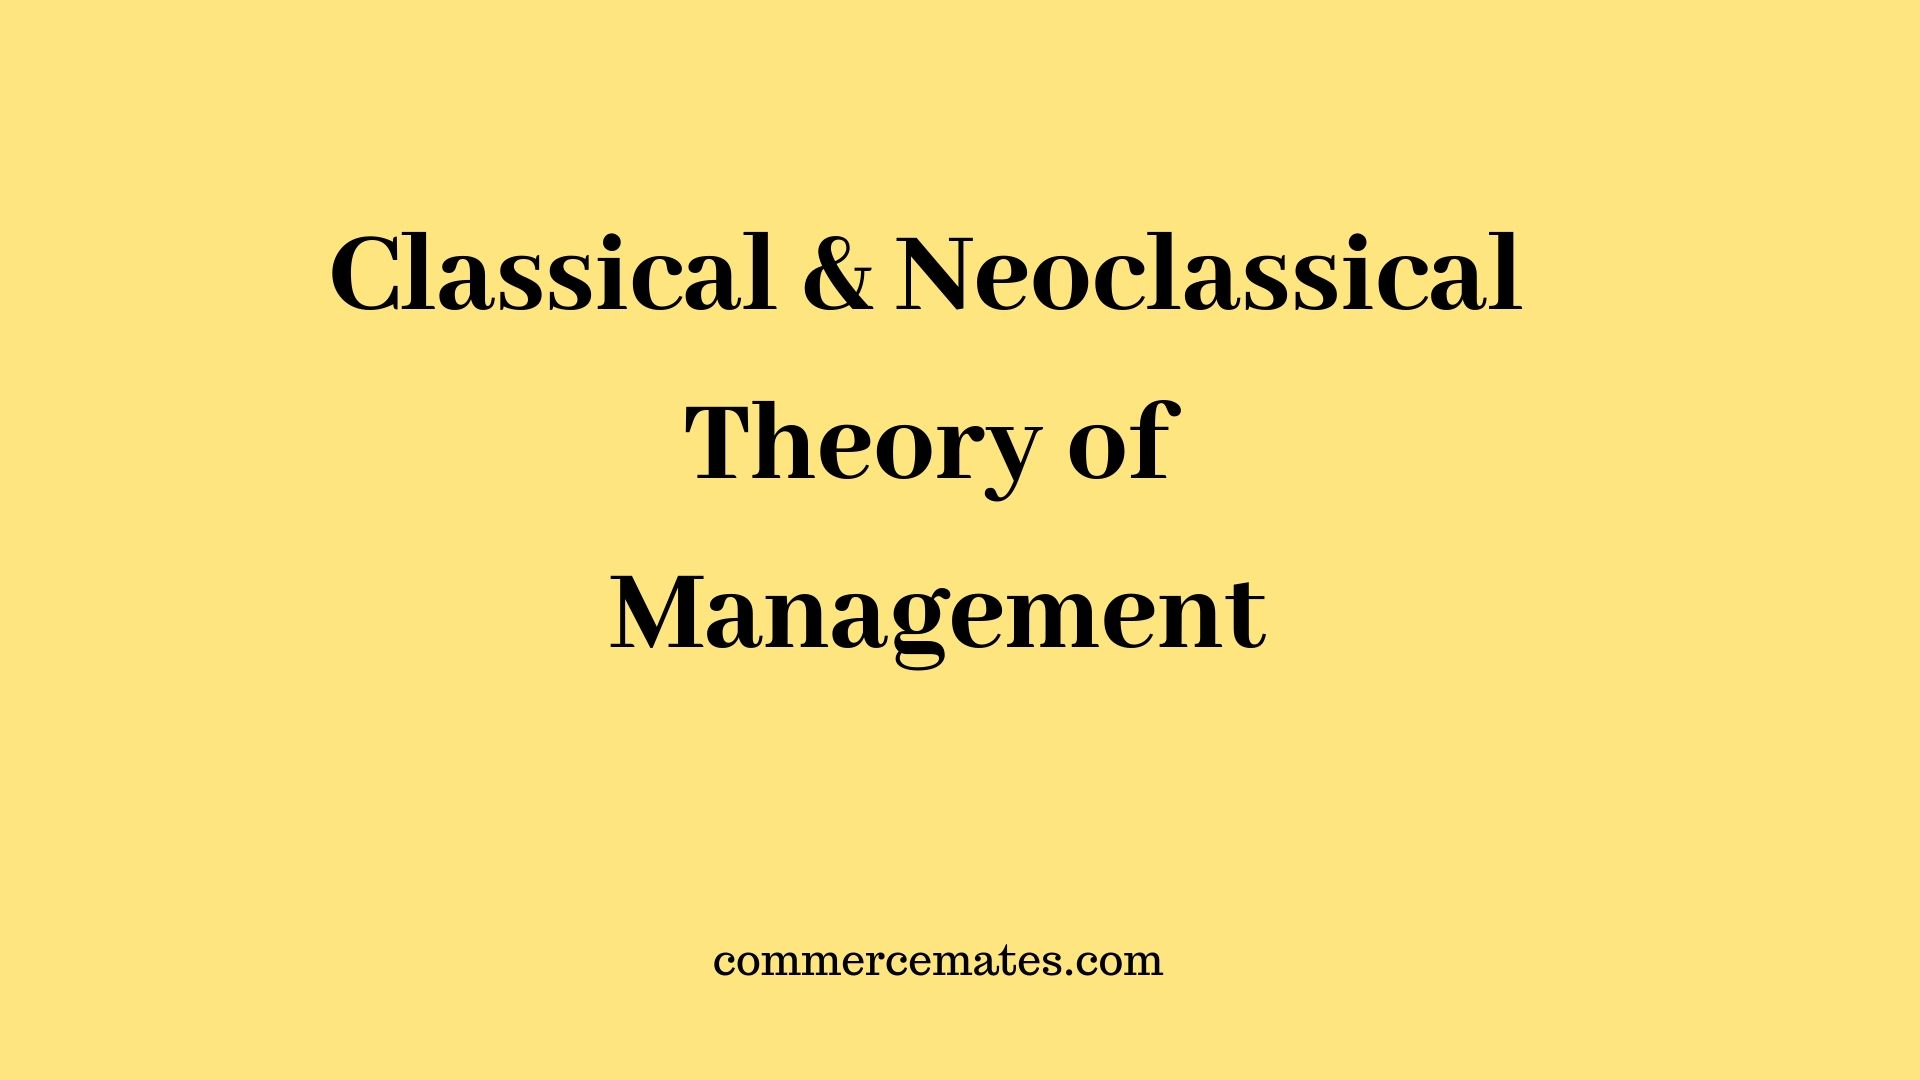 Classical and Neoclassical Theory of Management